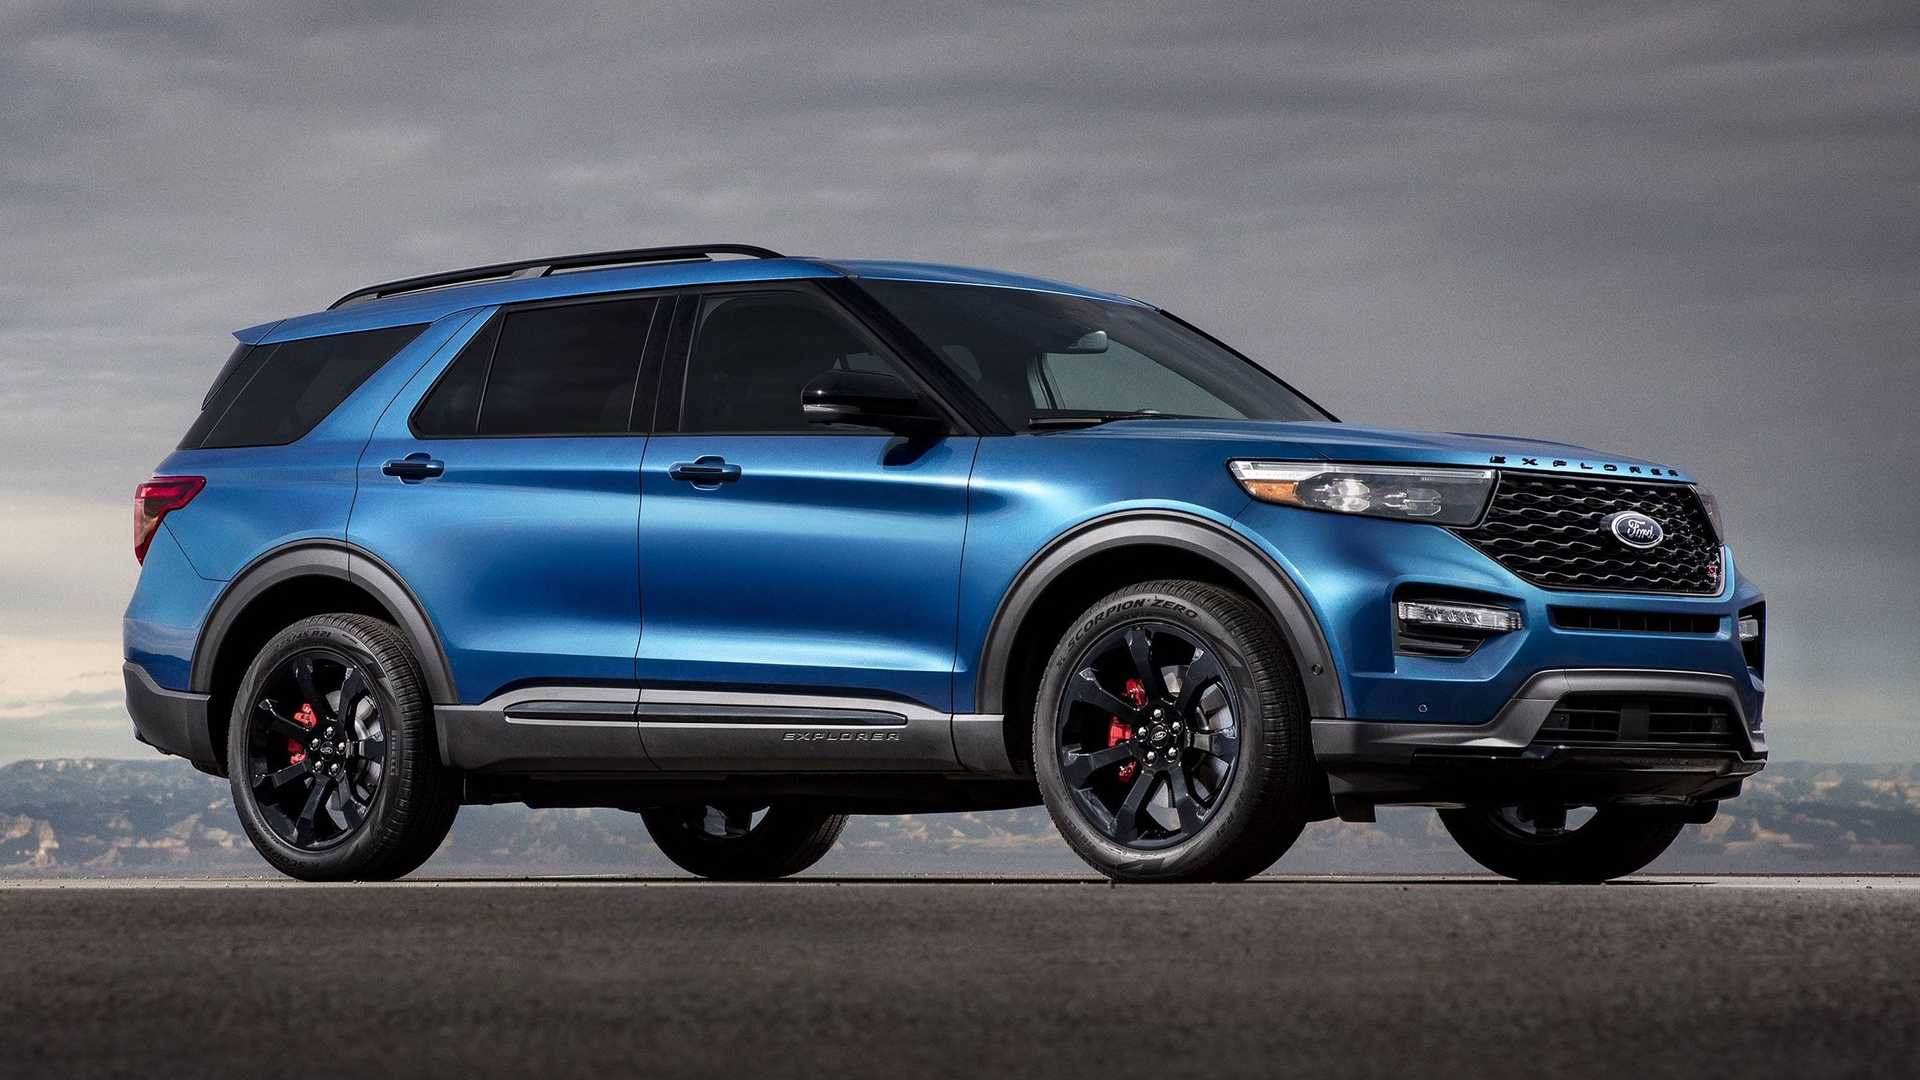 2016 Suvs Worth Waiting For >> 2020 New Models Guide 30 Cars Trucks And Suvs Coming Soon